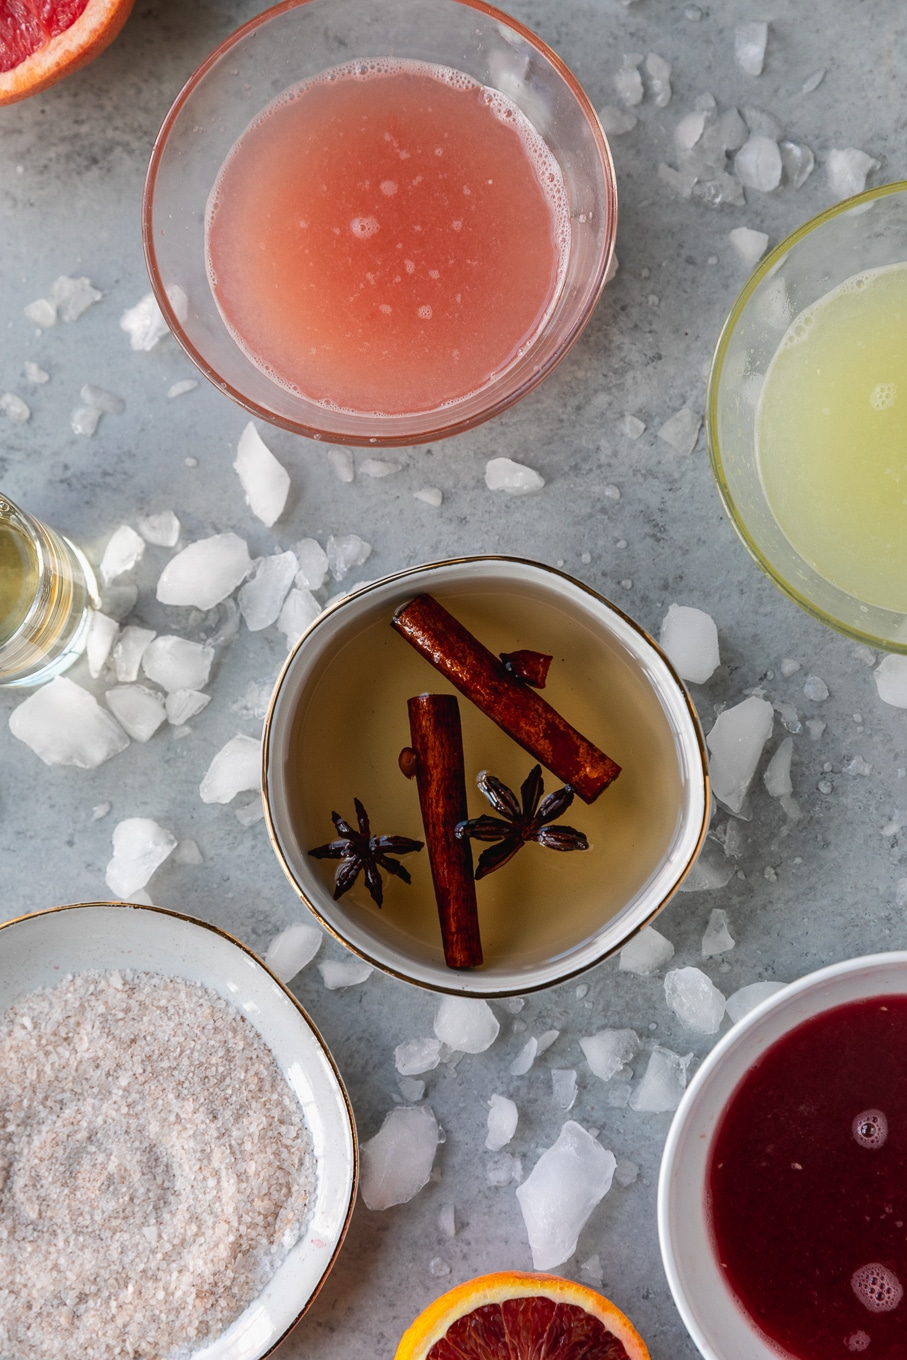 Overhead shot of a bowl of simple syrup with star anise and cinnamon sticks floating in it, surrounded by bowls of lime juice, grapefruit juice, and blood orange juice, with crushed ice scattered around